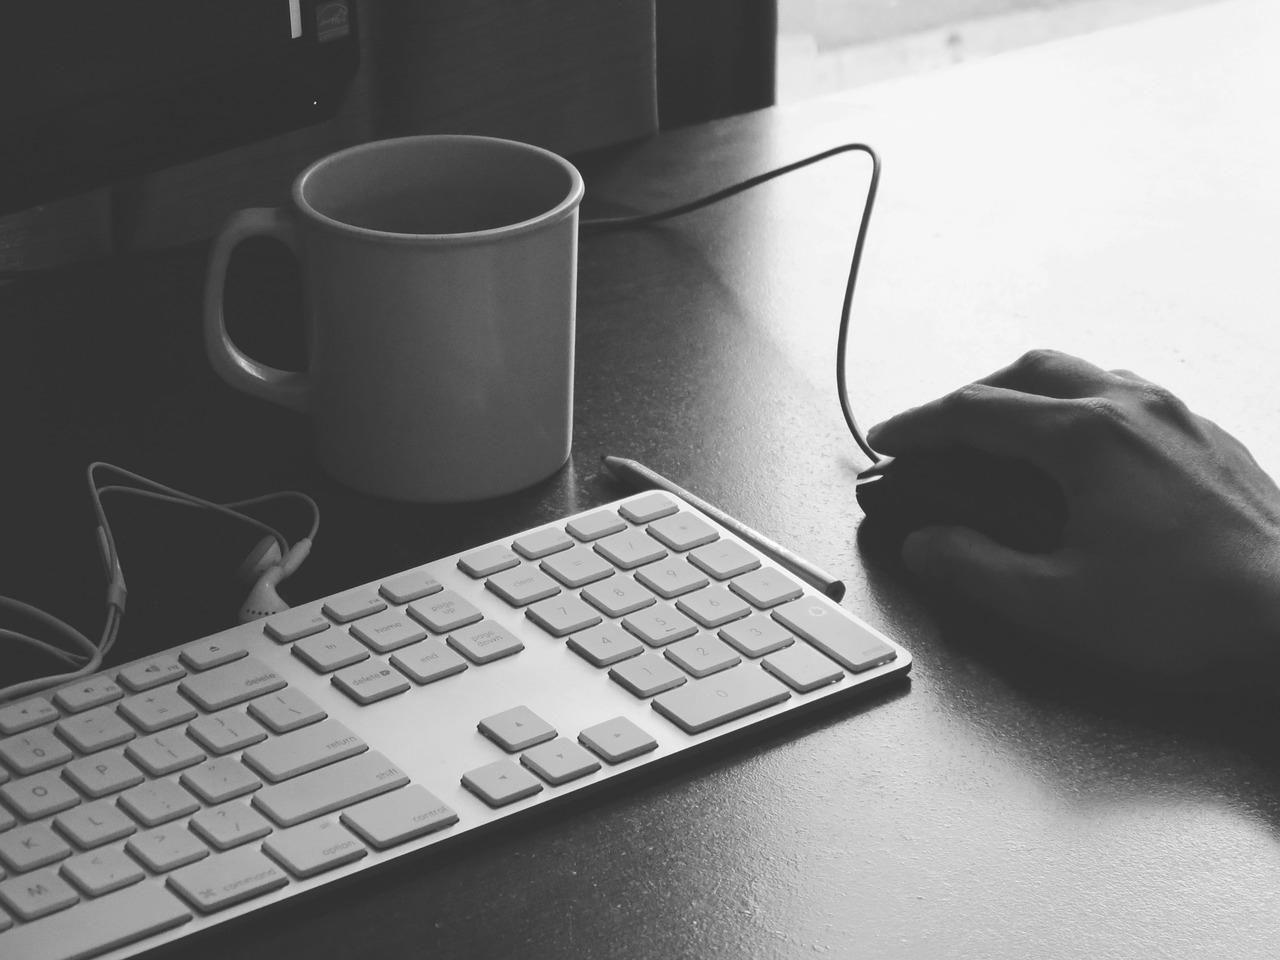 8 Ways to Make Blogging Easier If You're Not a Good Writer